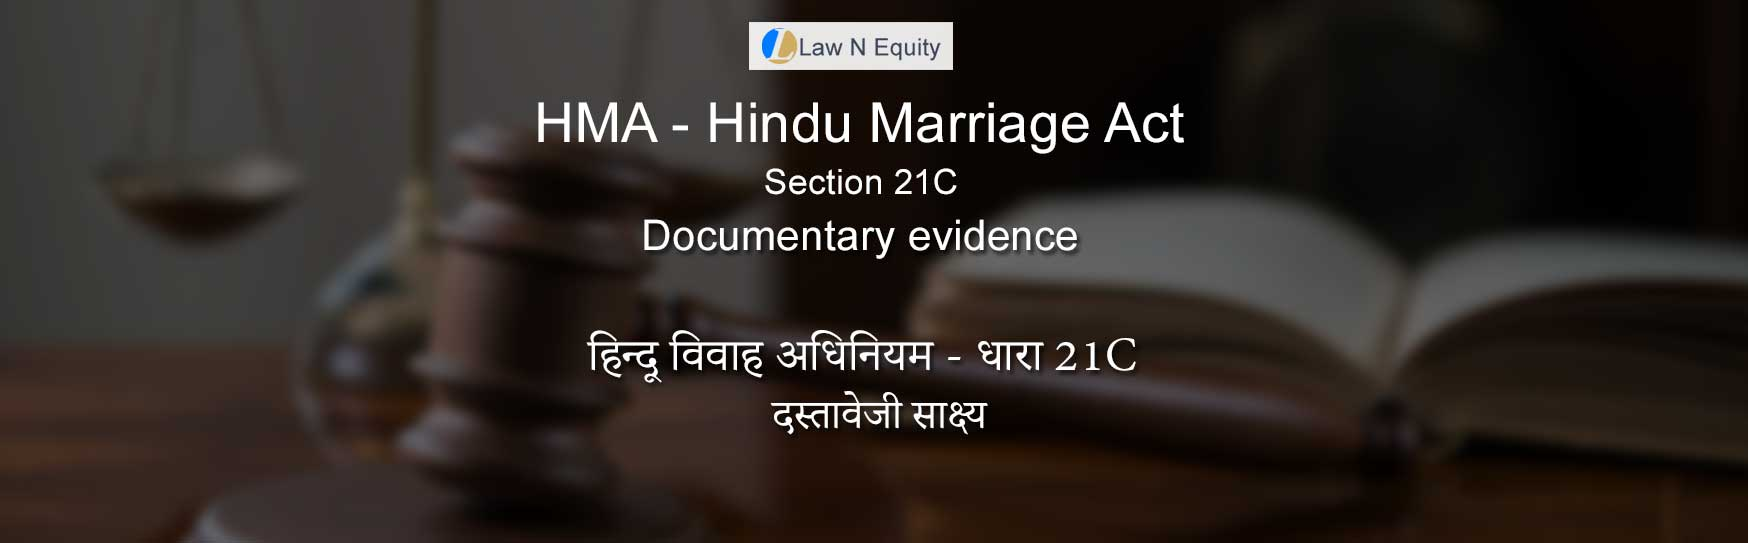 Hindu Marriage Act(HMA) Section 21C